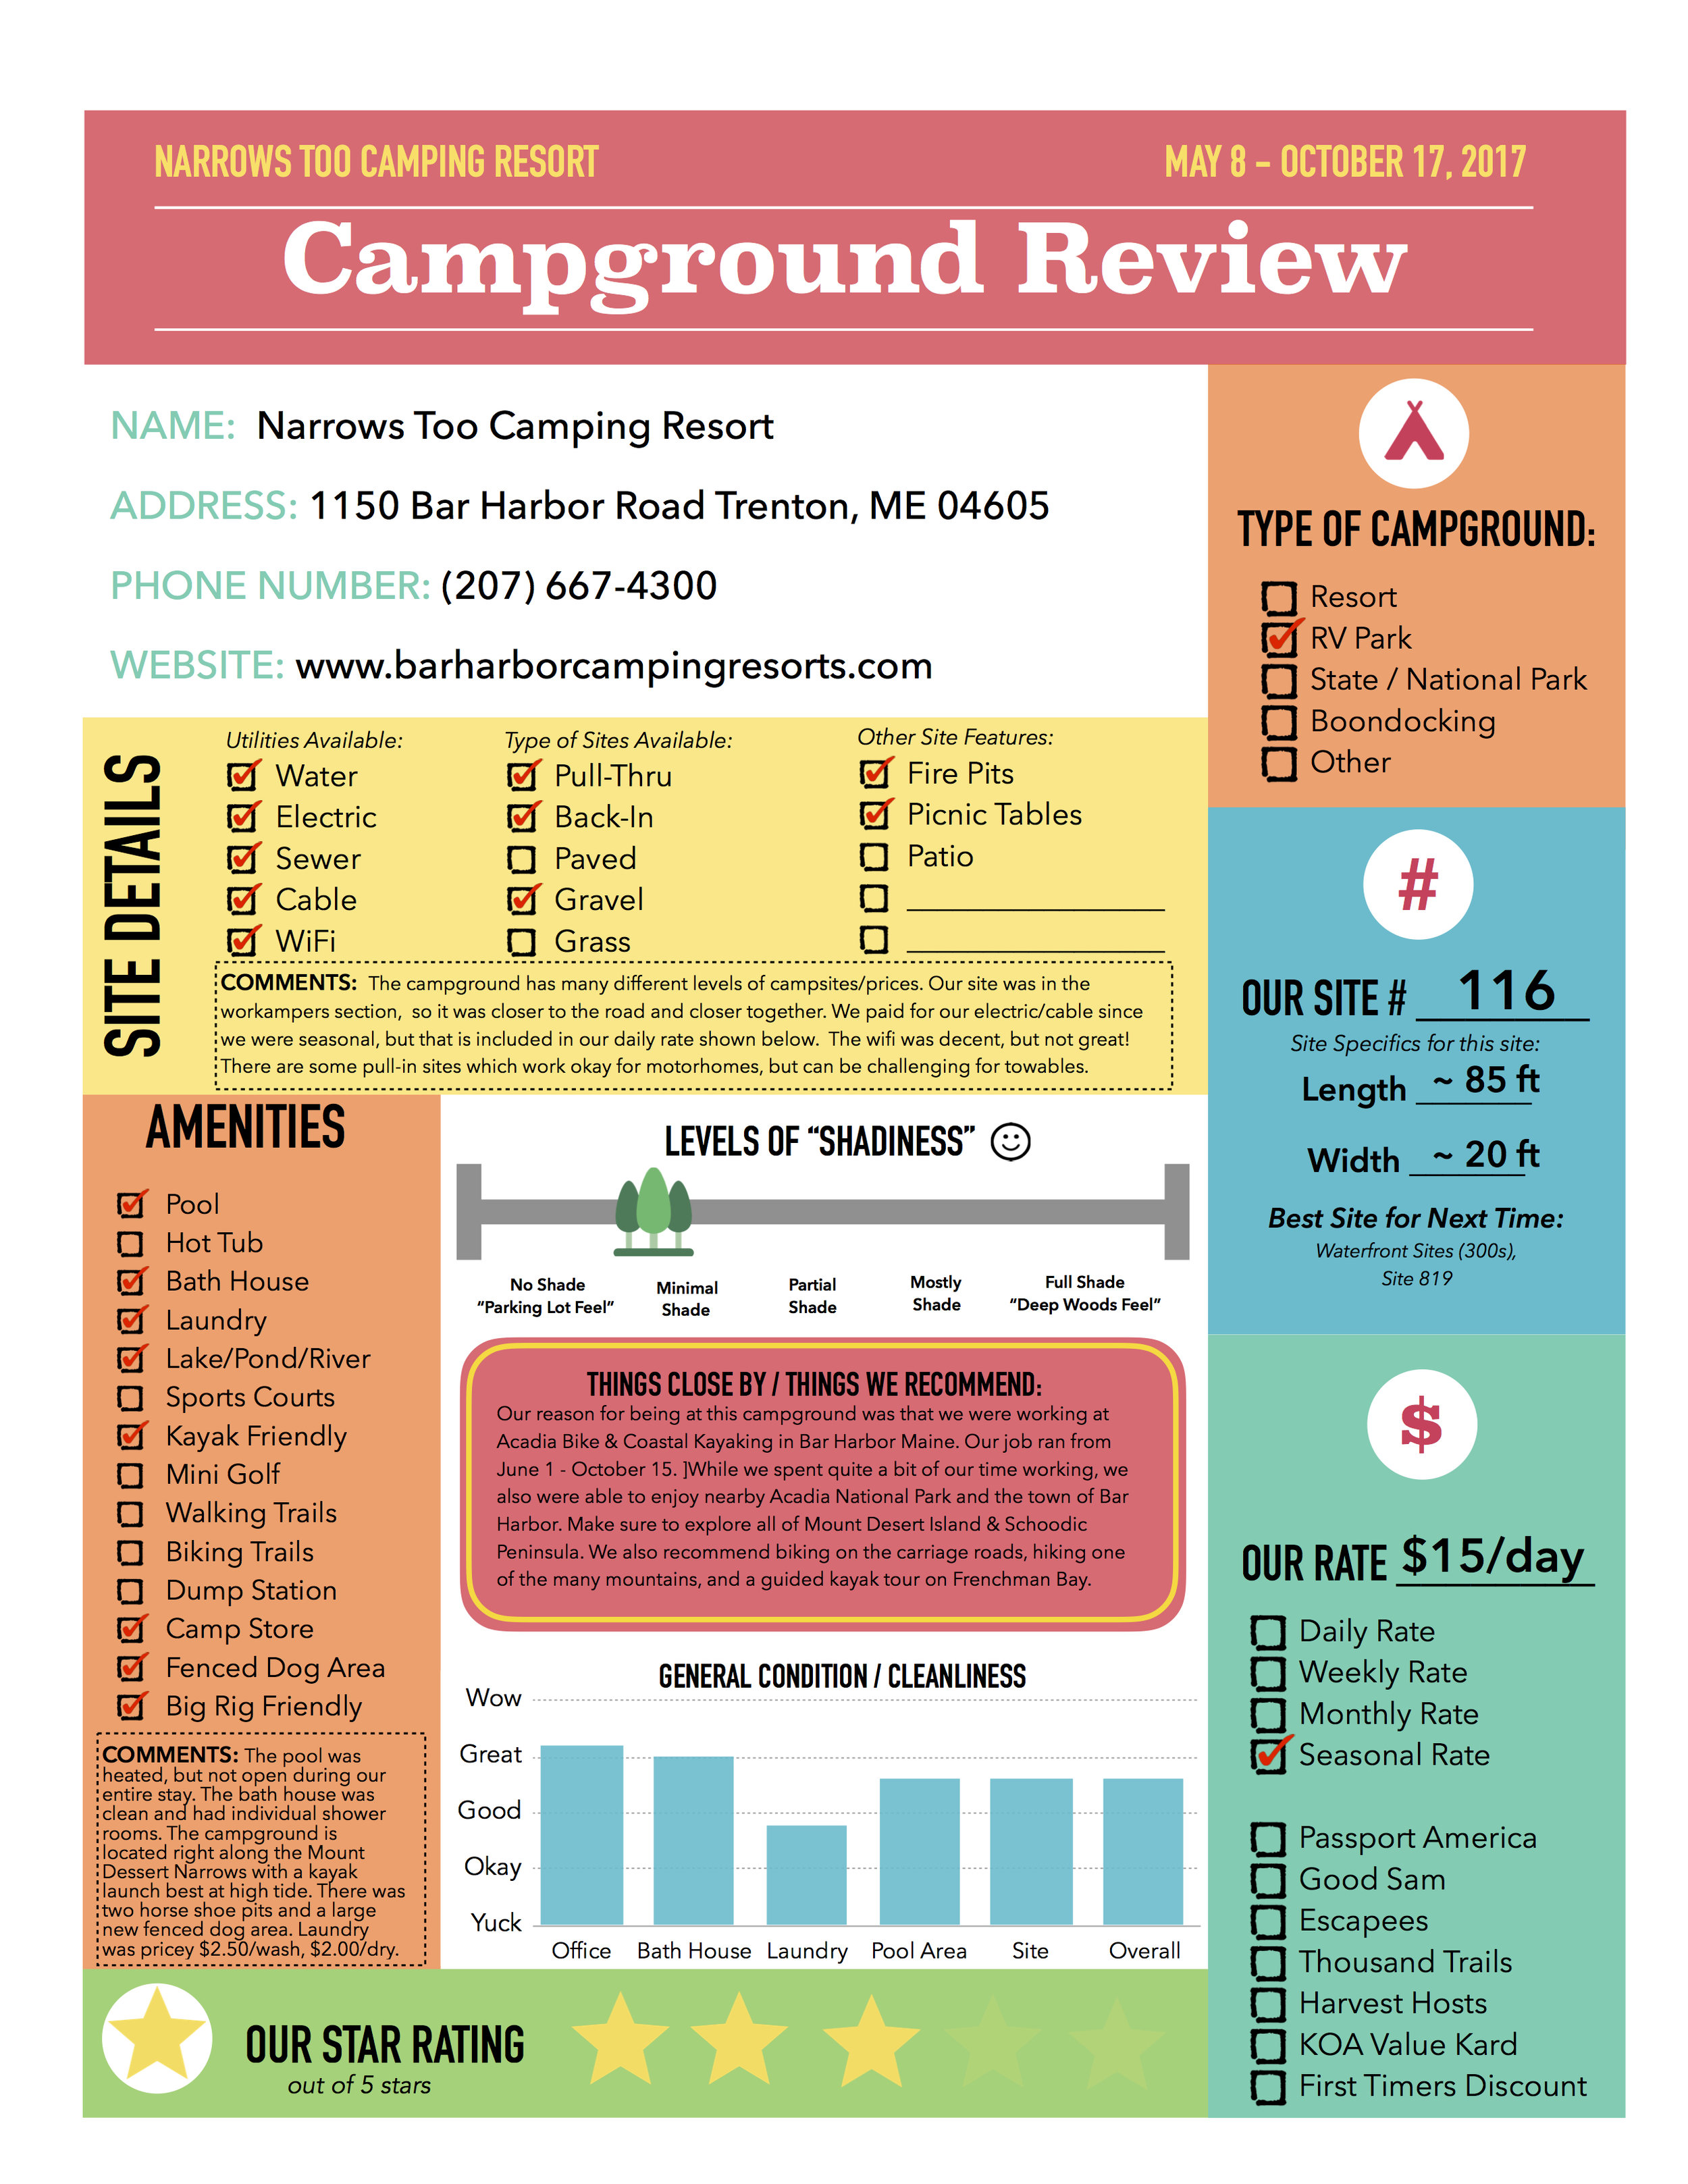 2017 Campground Review - Narrows Too Camping Resort copy.jpg